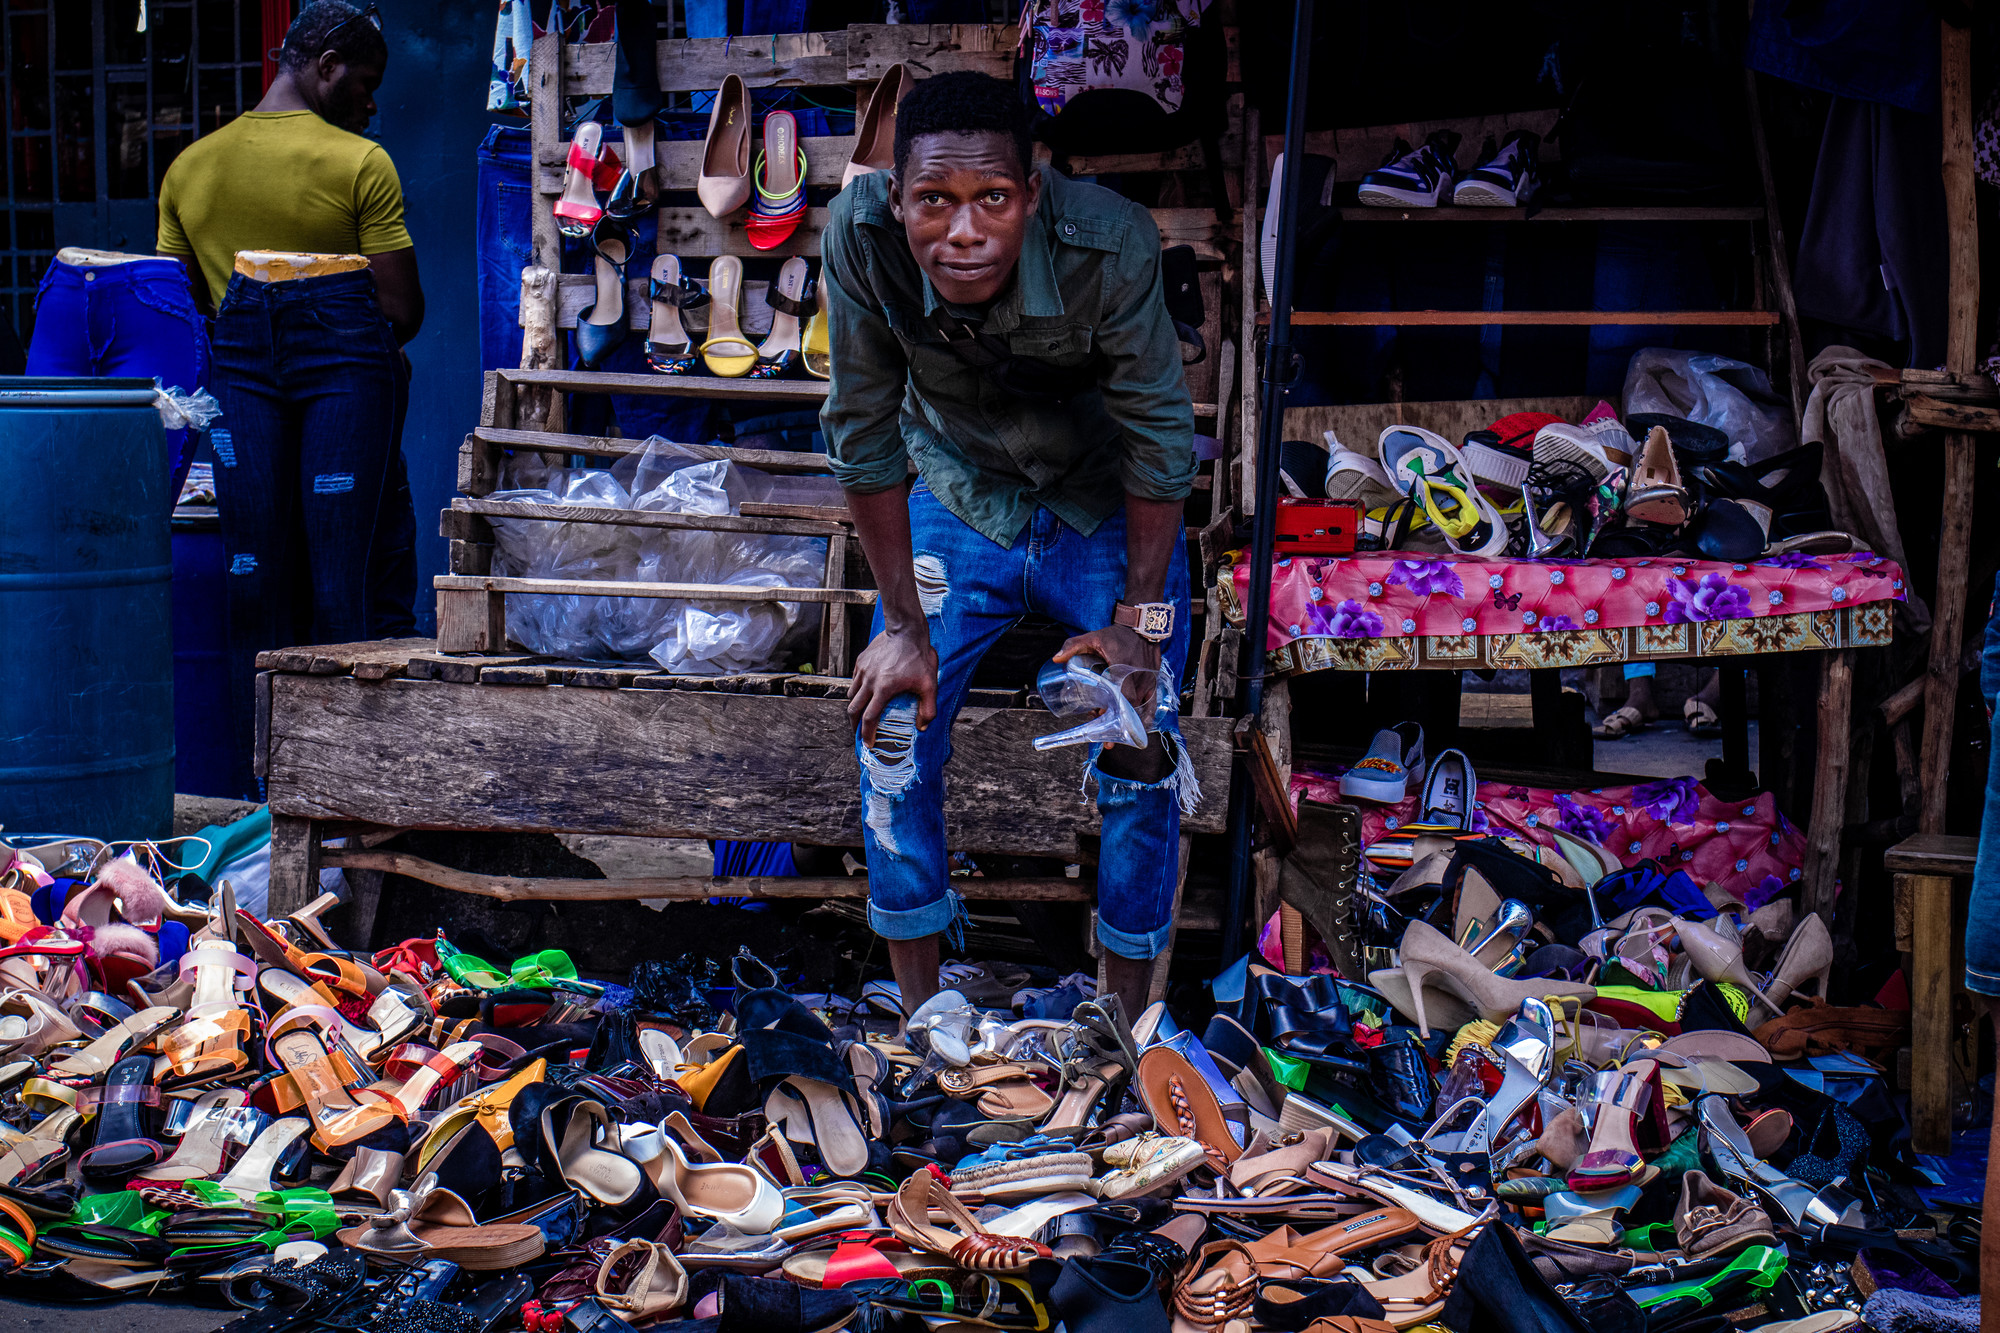 A man stands in front of bundles of shoes in an open-air stall.